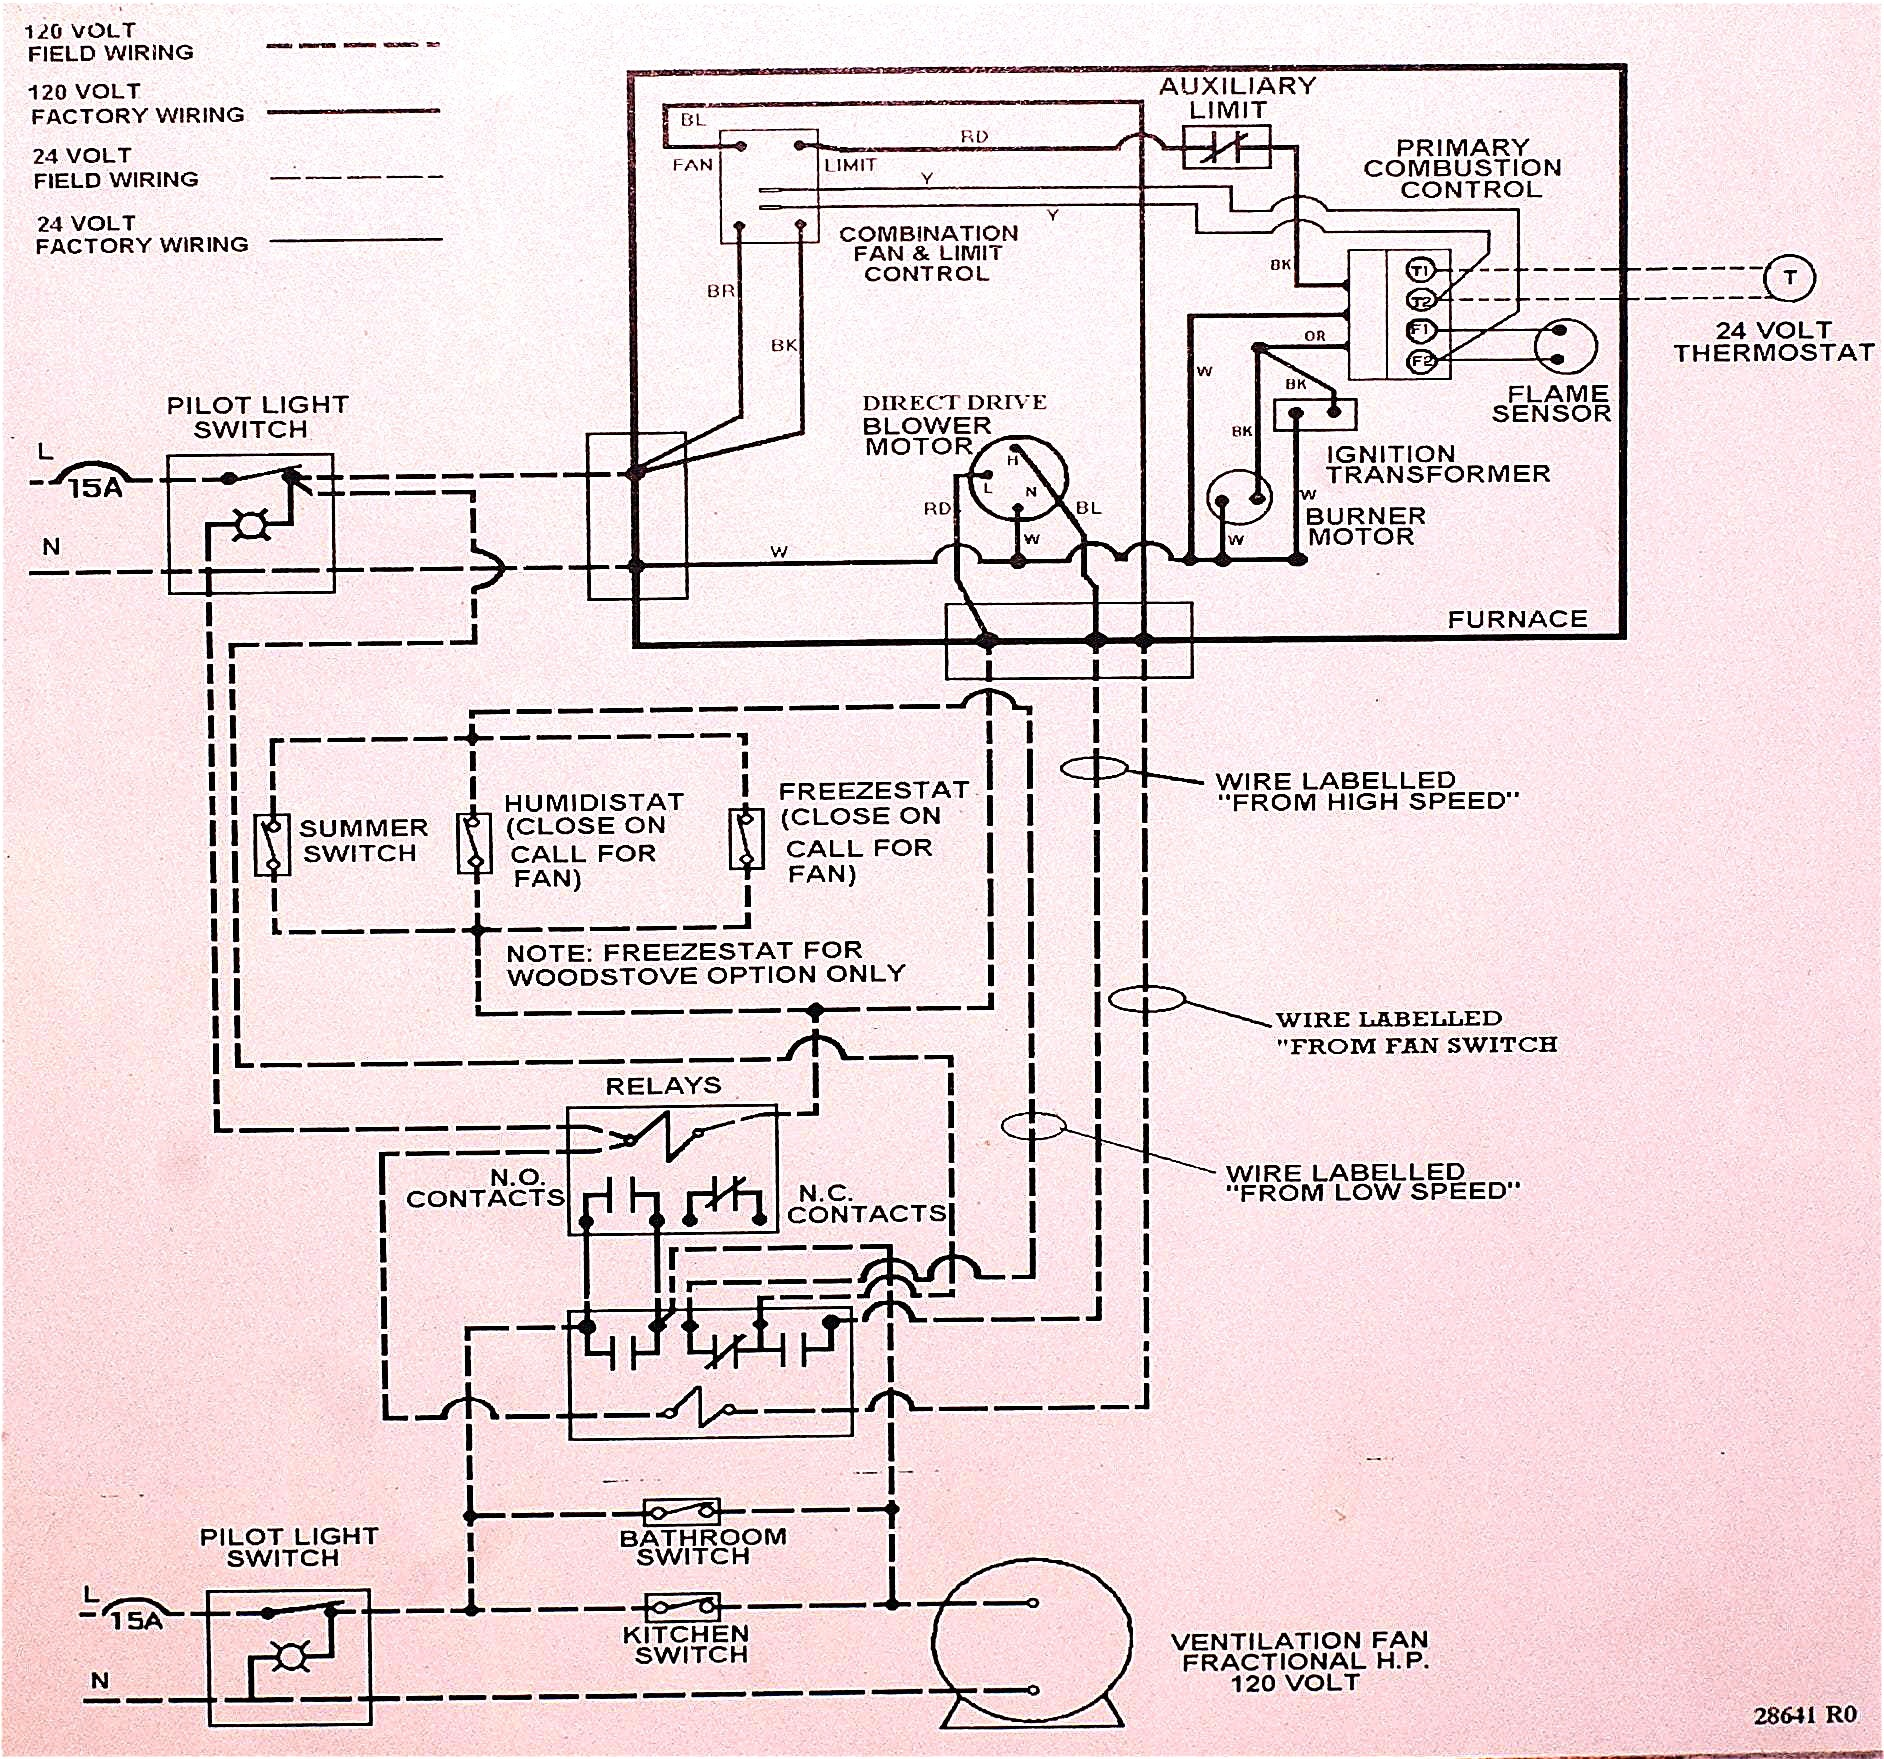 Older Gas Furnace Wiring Diagram Gas Furnace Wiring Diagram Delightful Bright for Coleman the Inside Of Older Gas Furnace Wiring Diagram